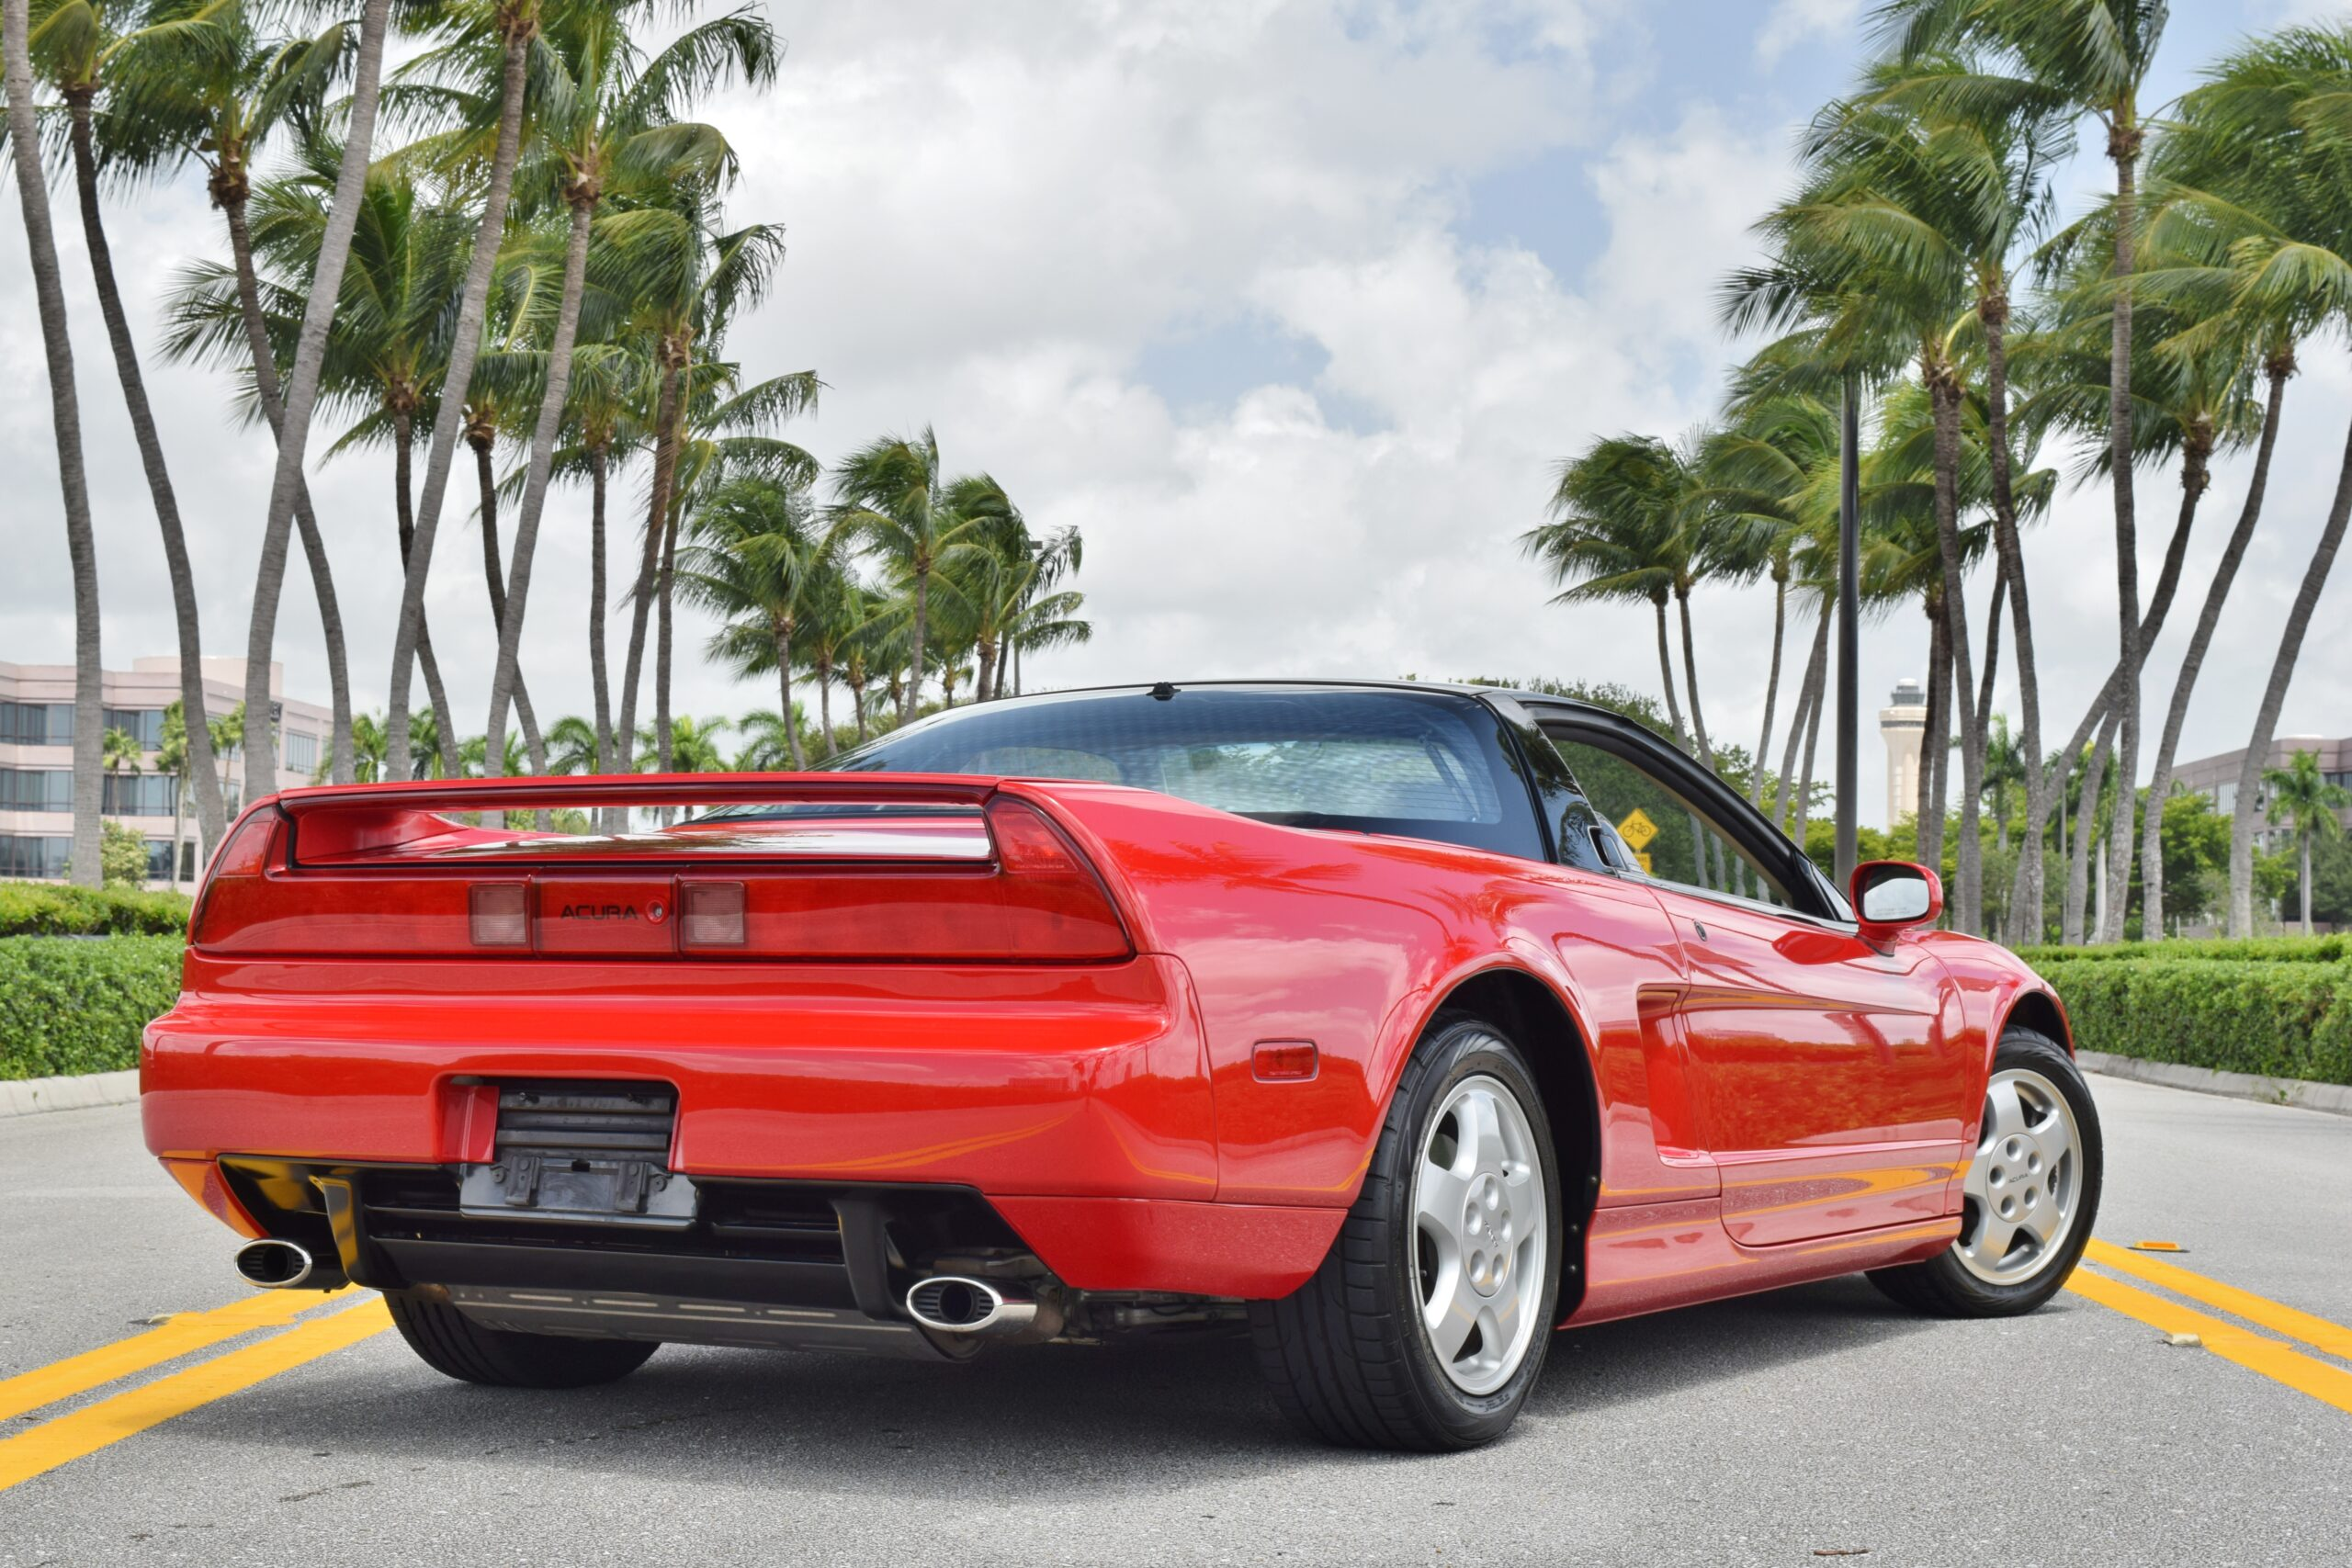 1991 Acura NSX 2 Owner-Florida Car -ONLY 20K Miles! – All original – Unmodified- Collector item